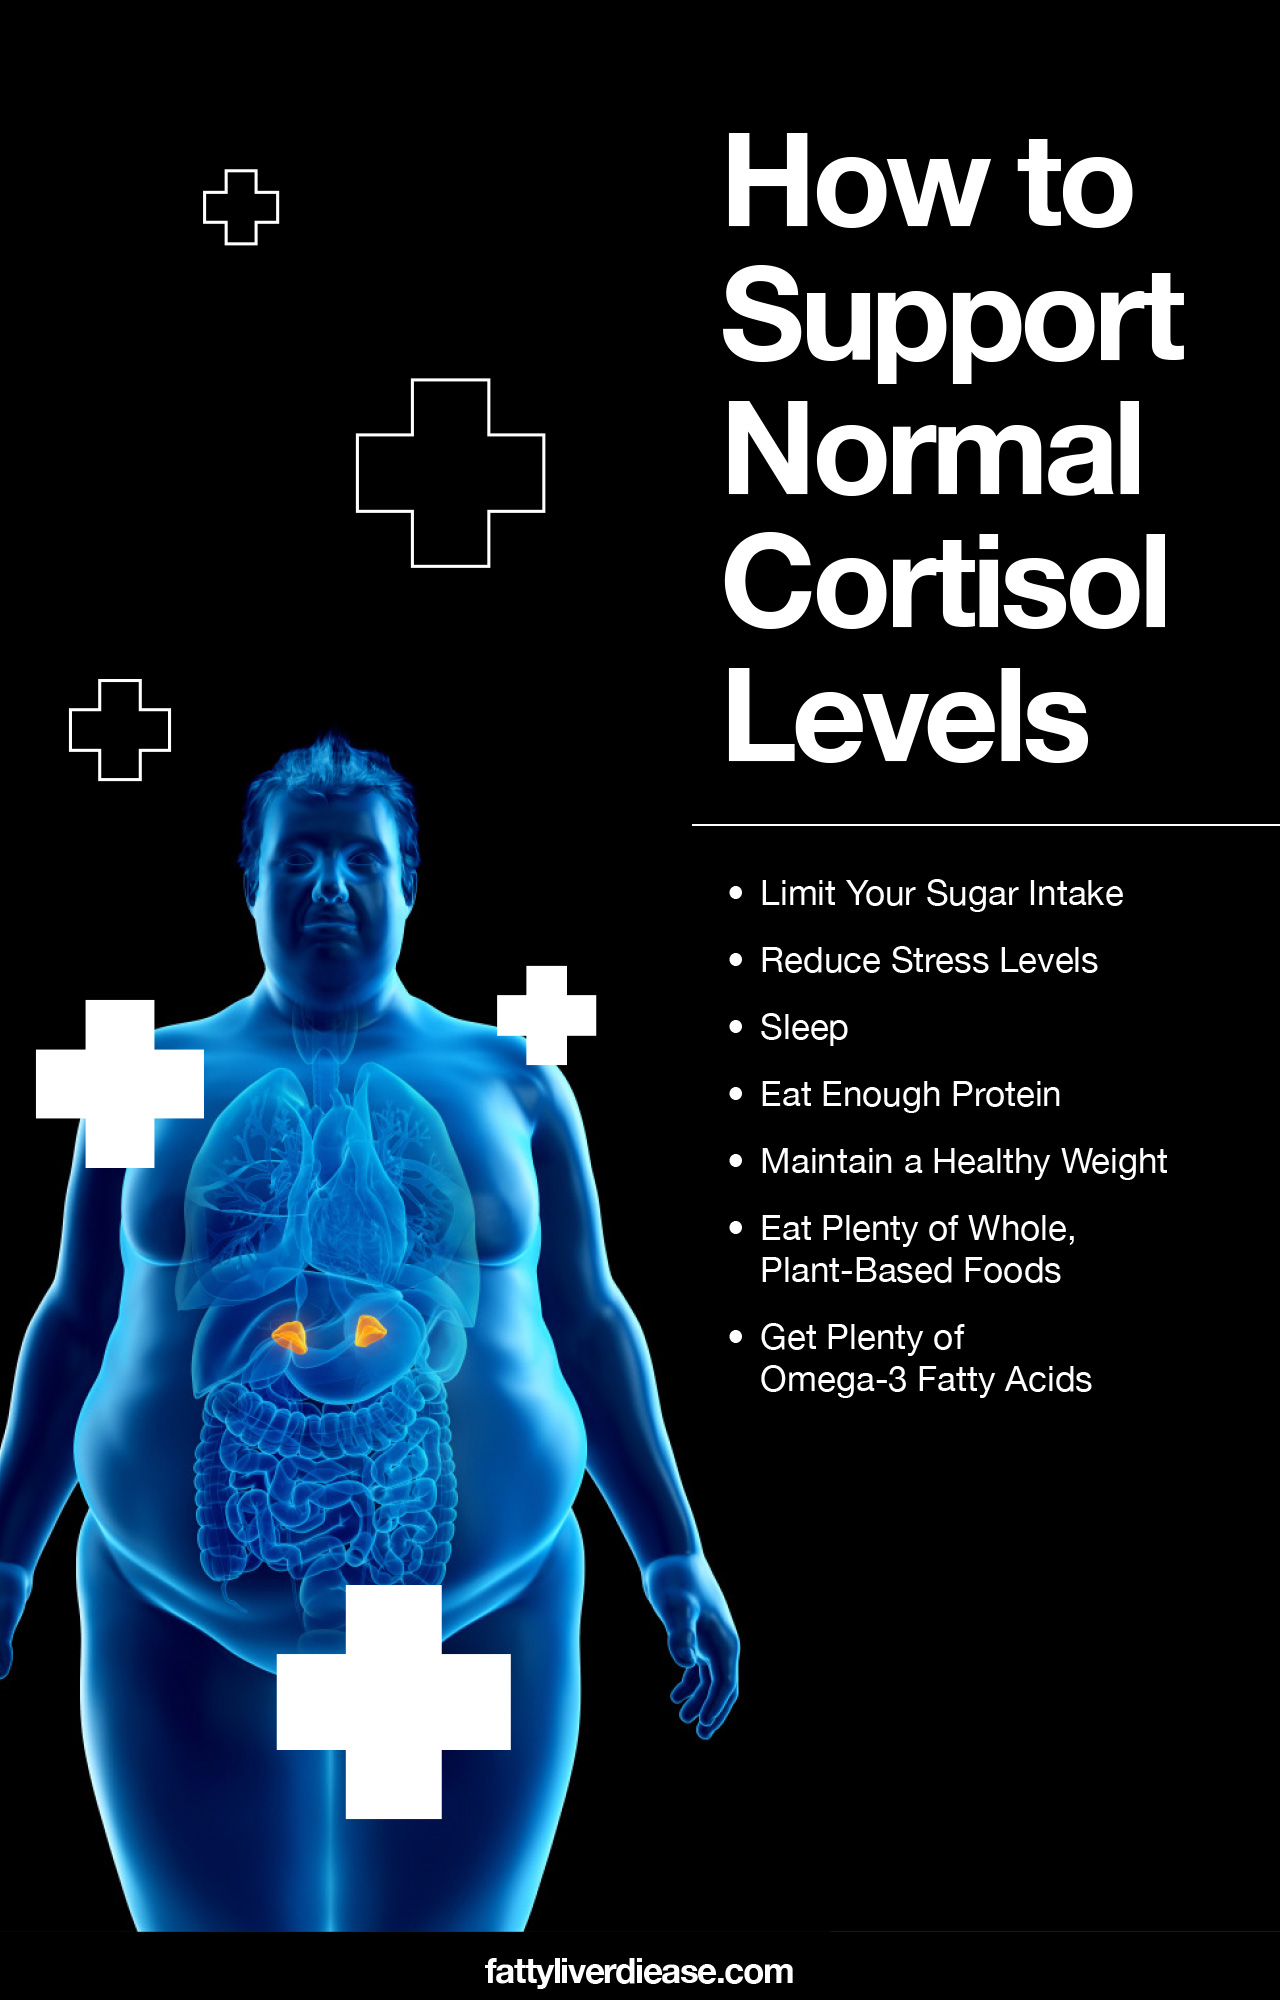 normal cortisol levels